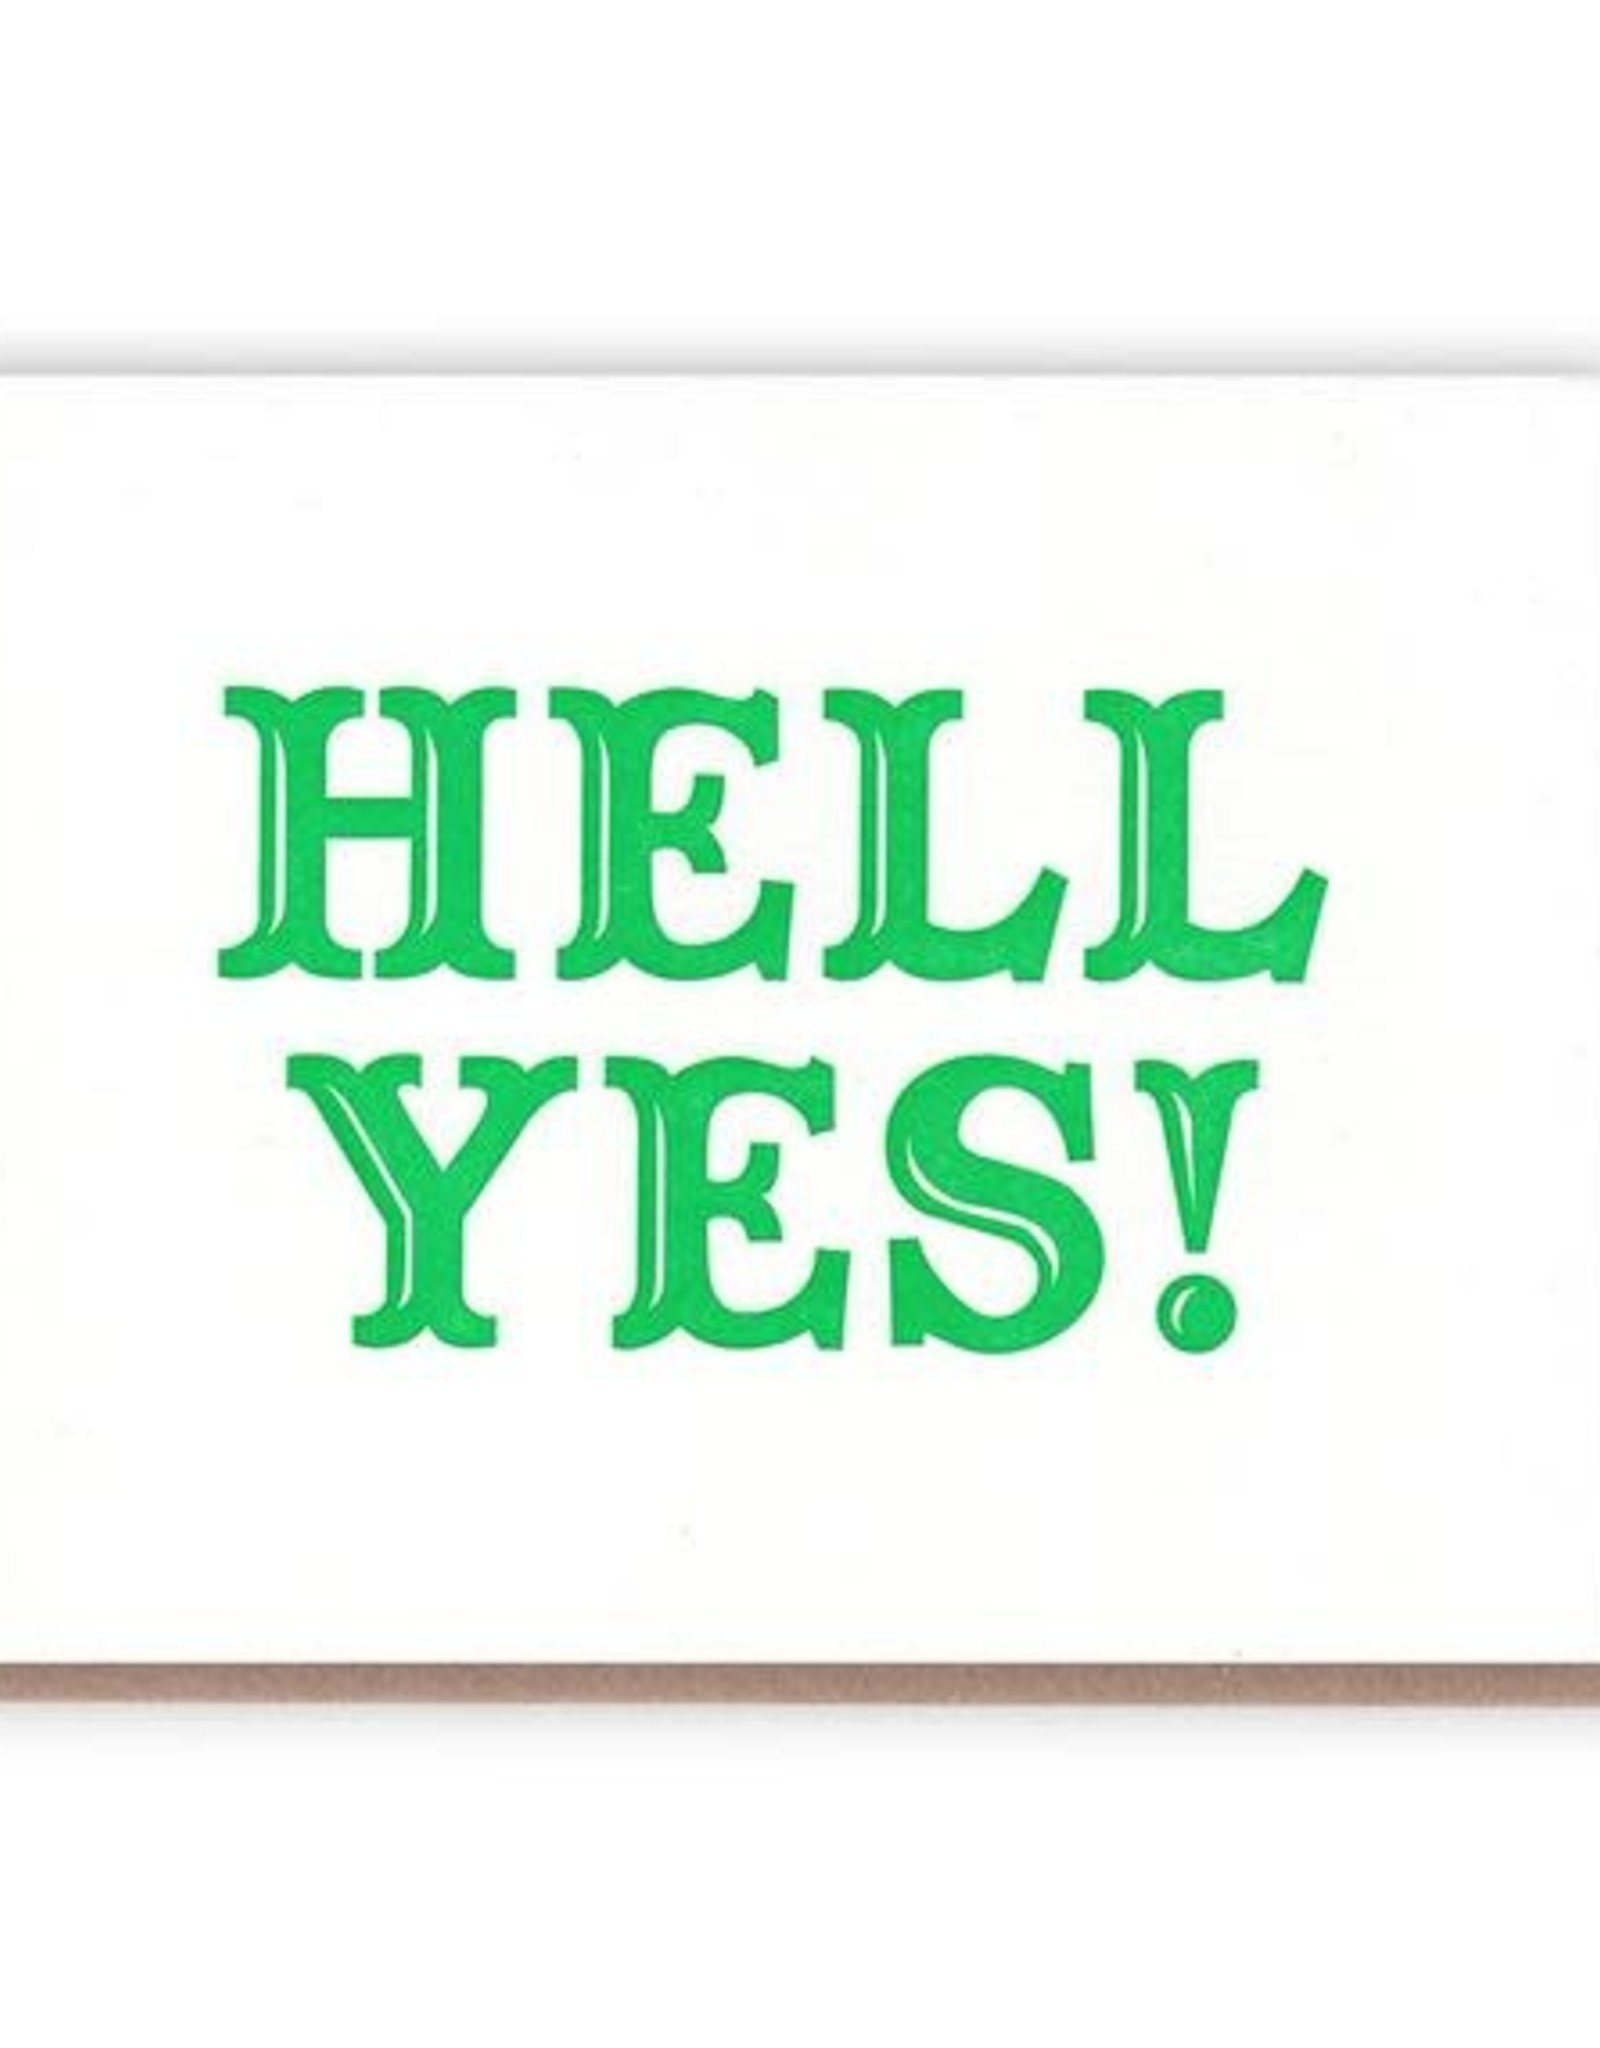 Hell Yes! Greeting Card